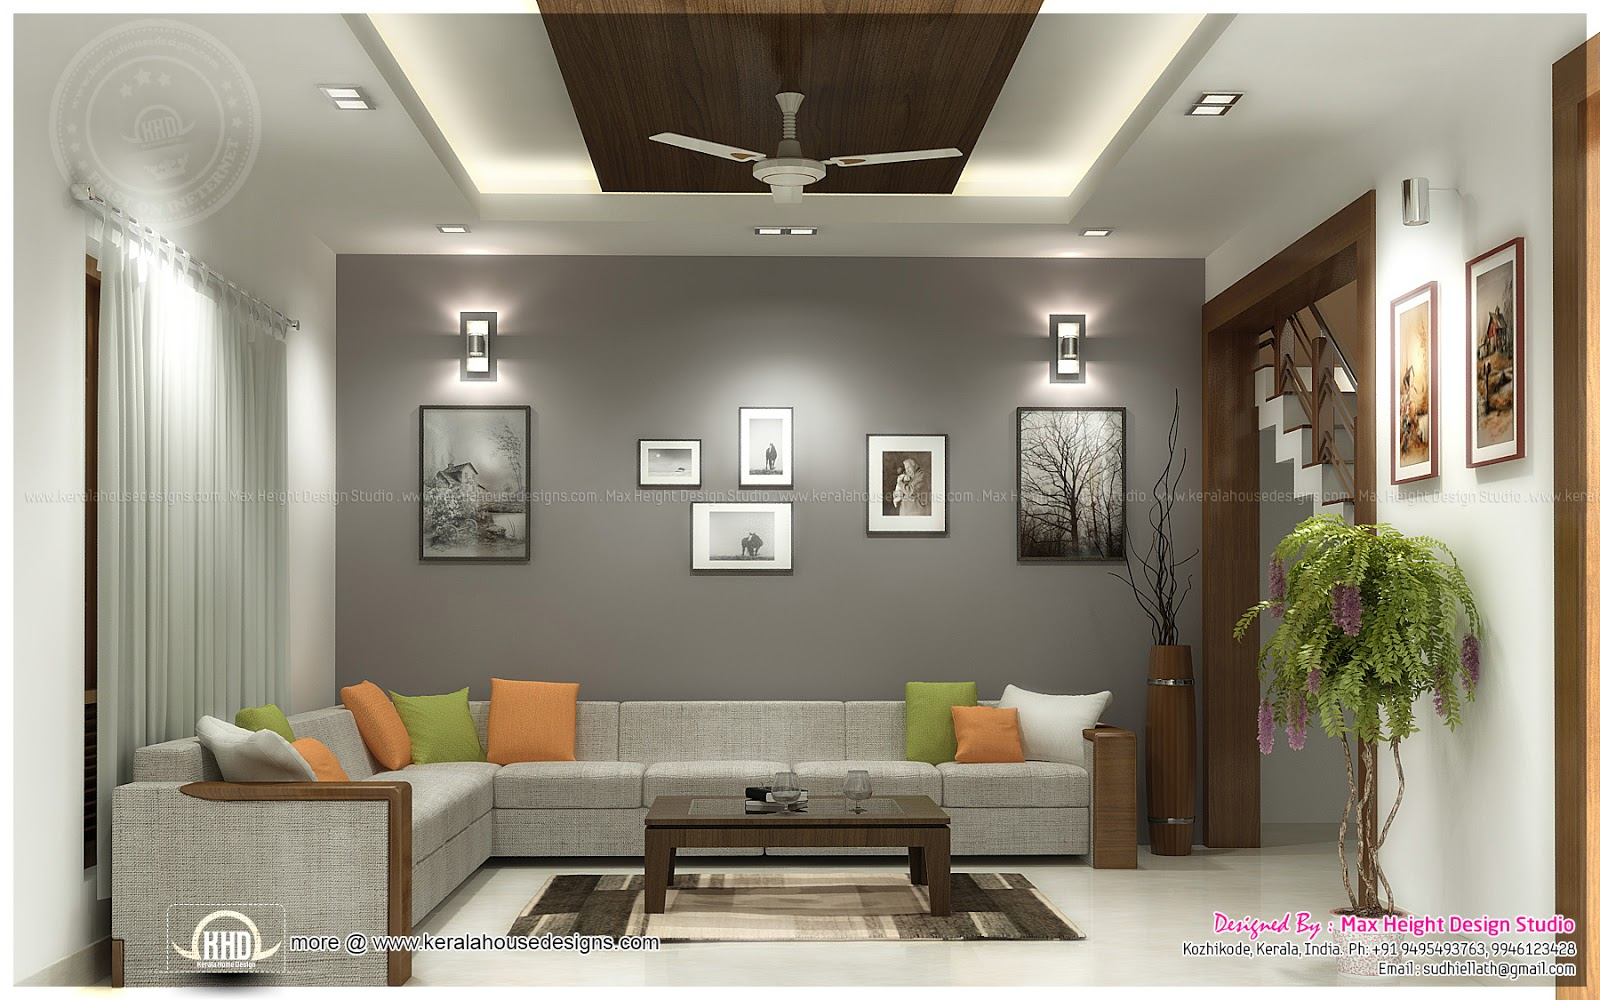 Beautiful interior ideas for home kerala home design and for House designs interior photos